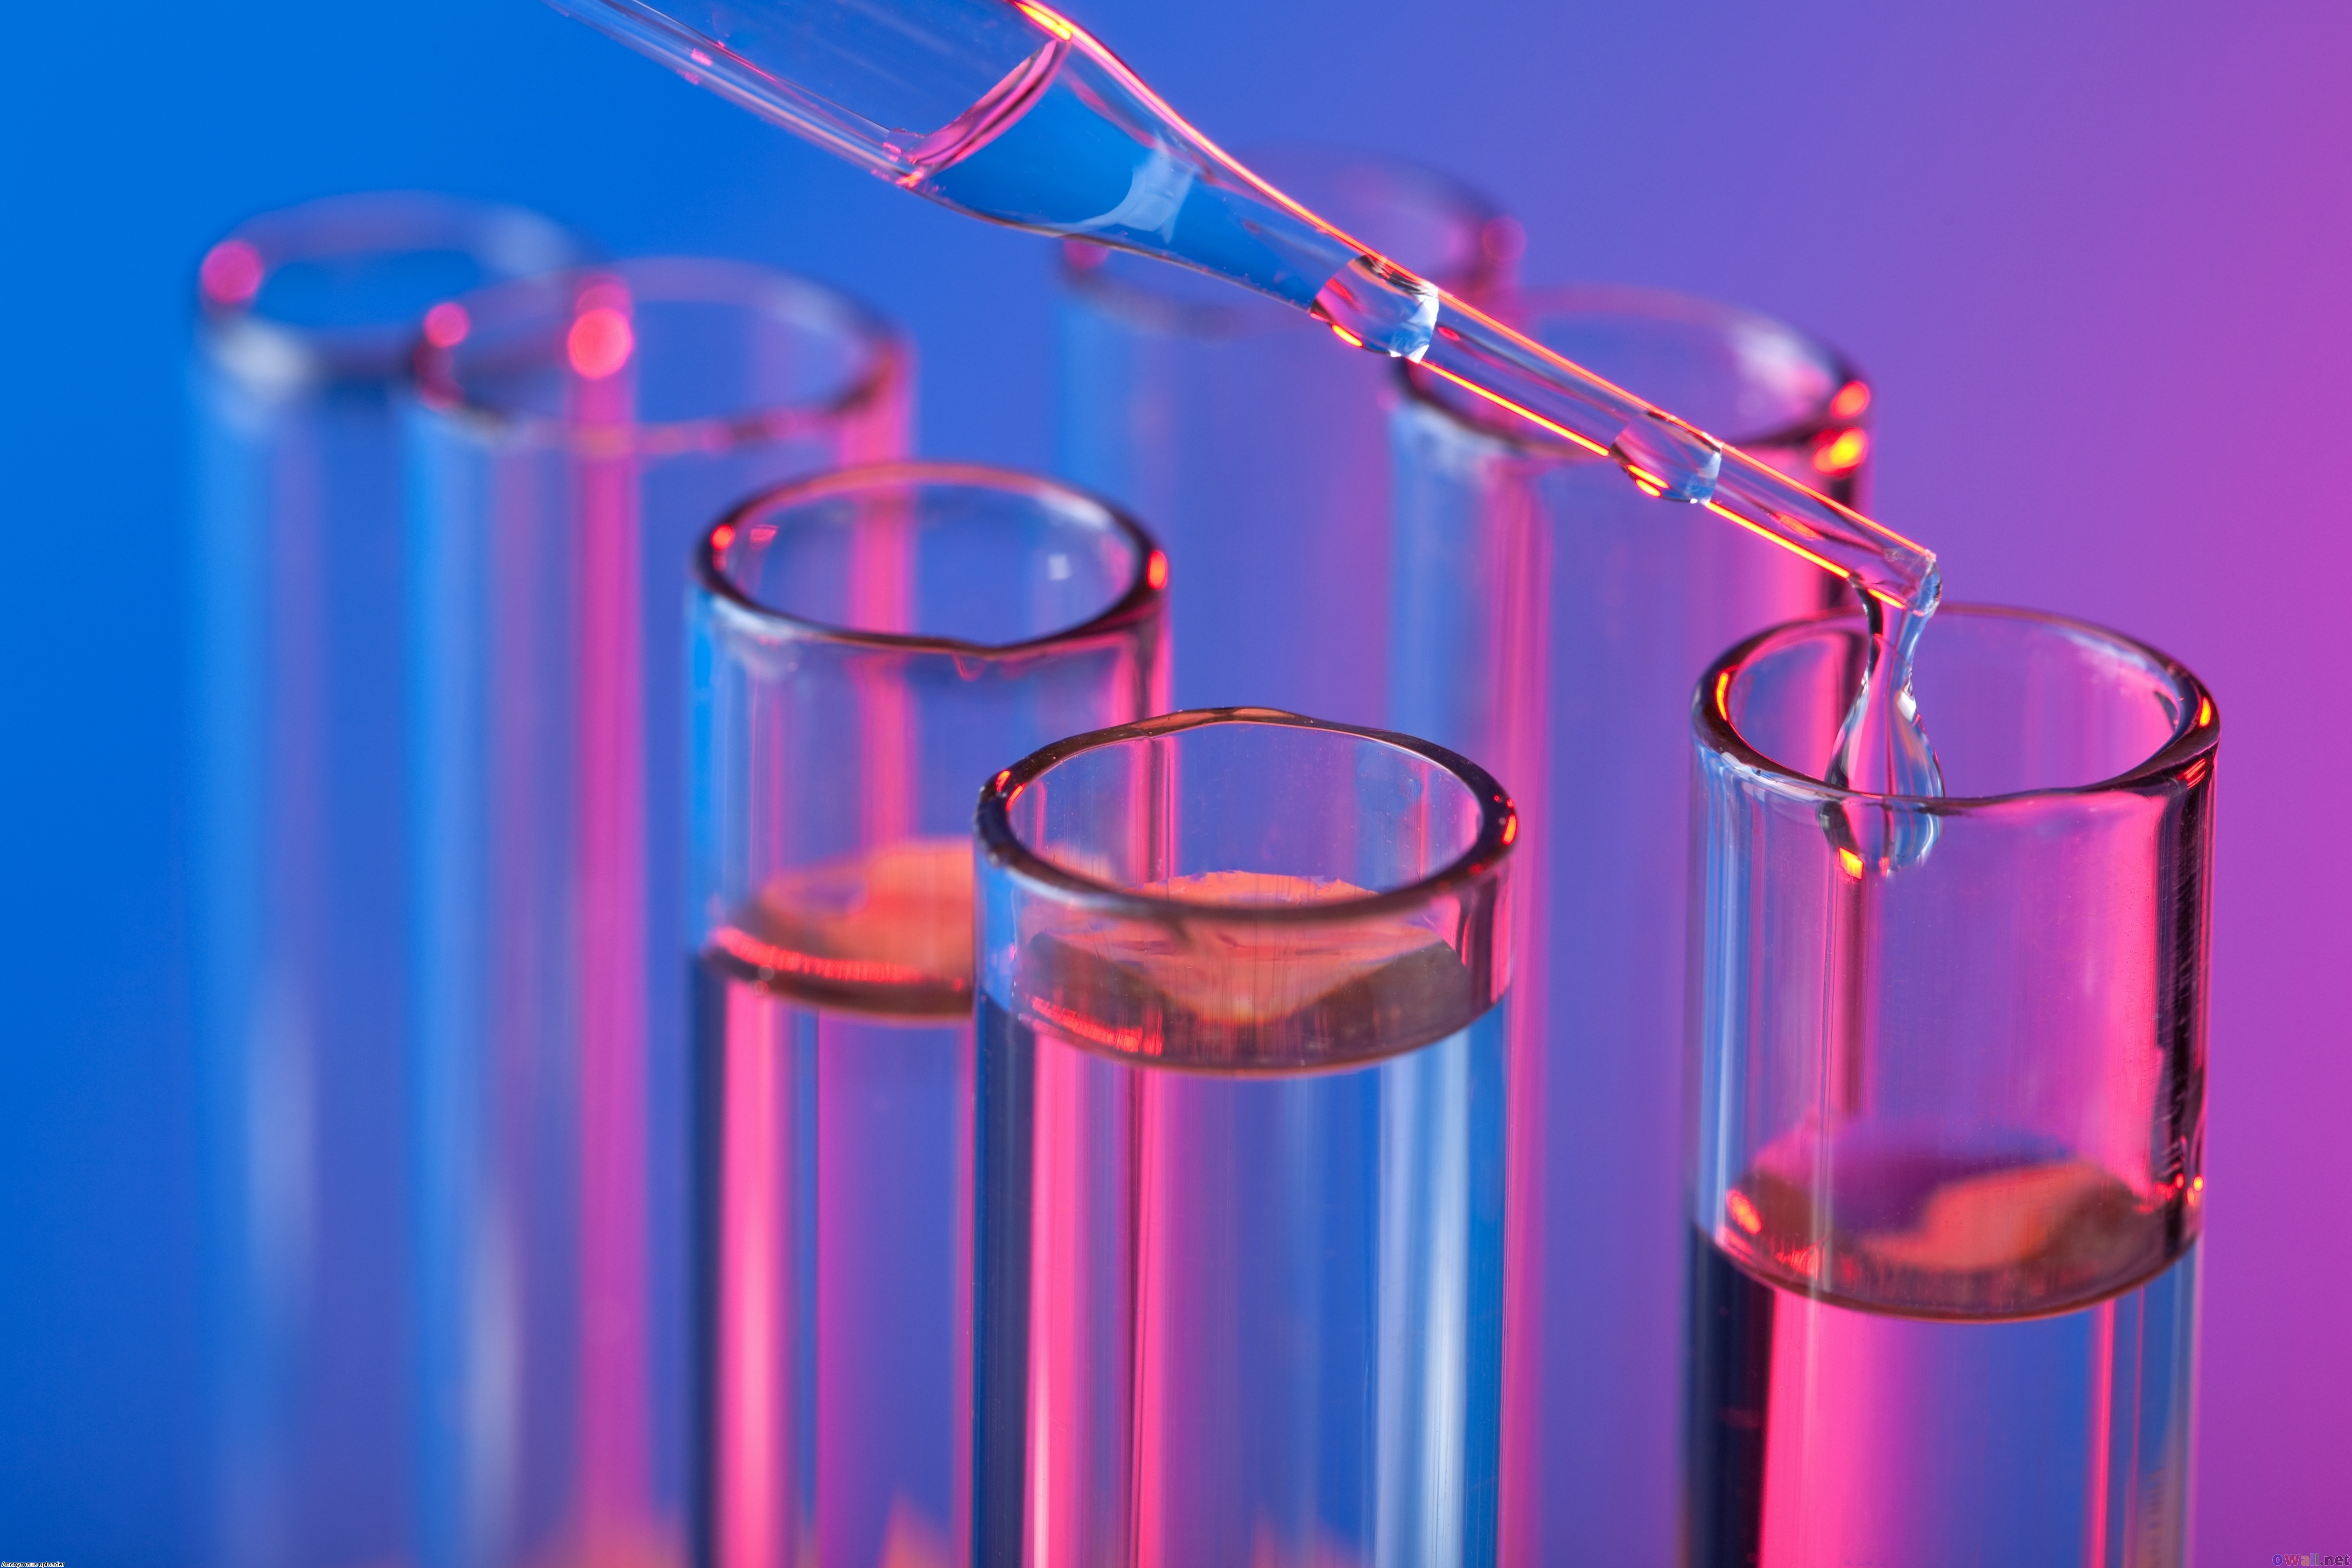 Northwest Biotherapeutics (NWBO) Stock Finds Tough To Cross The Recent Resistance